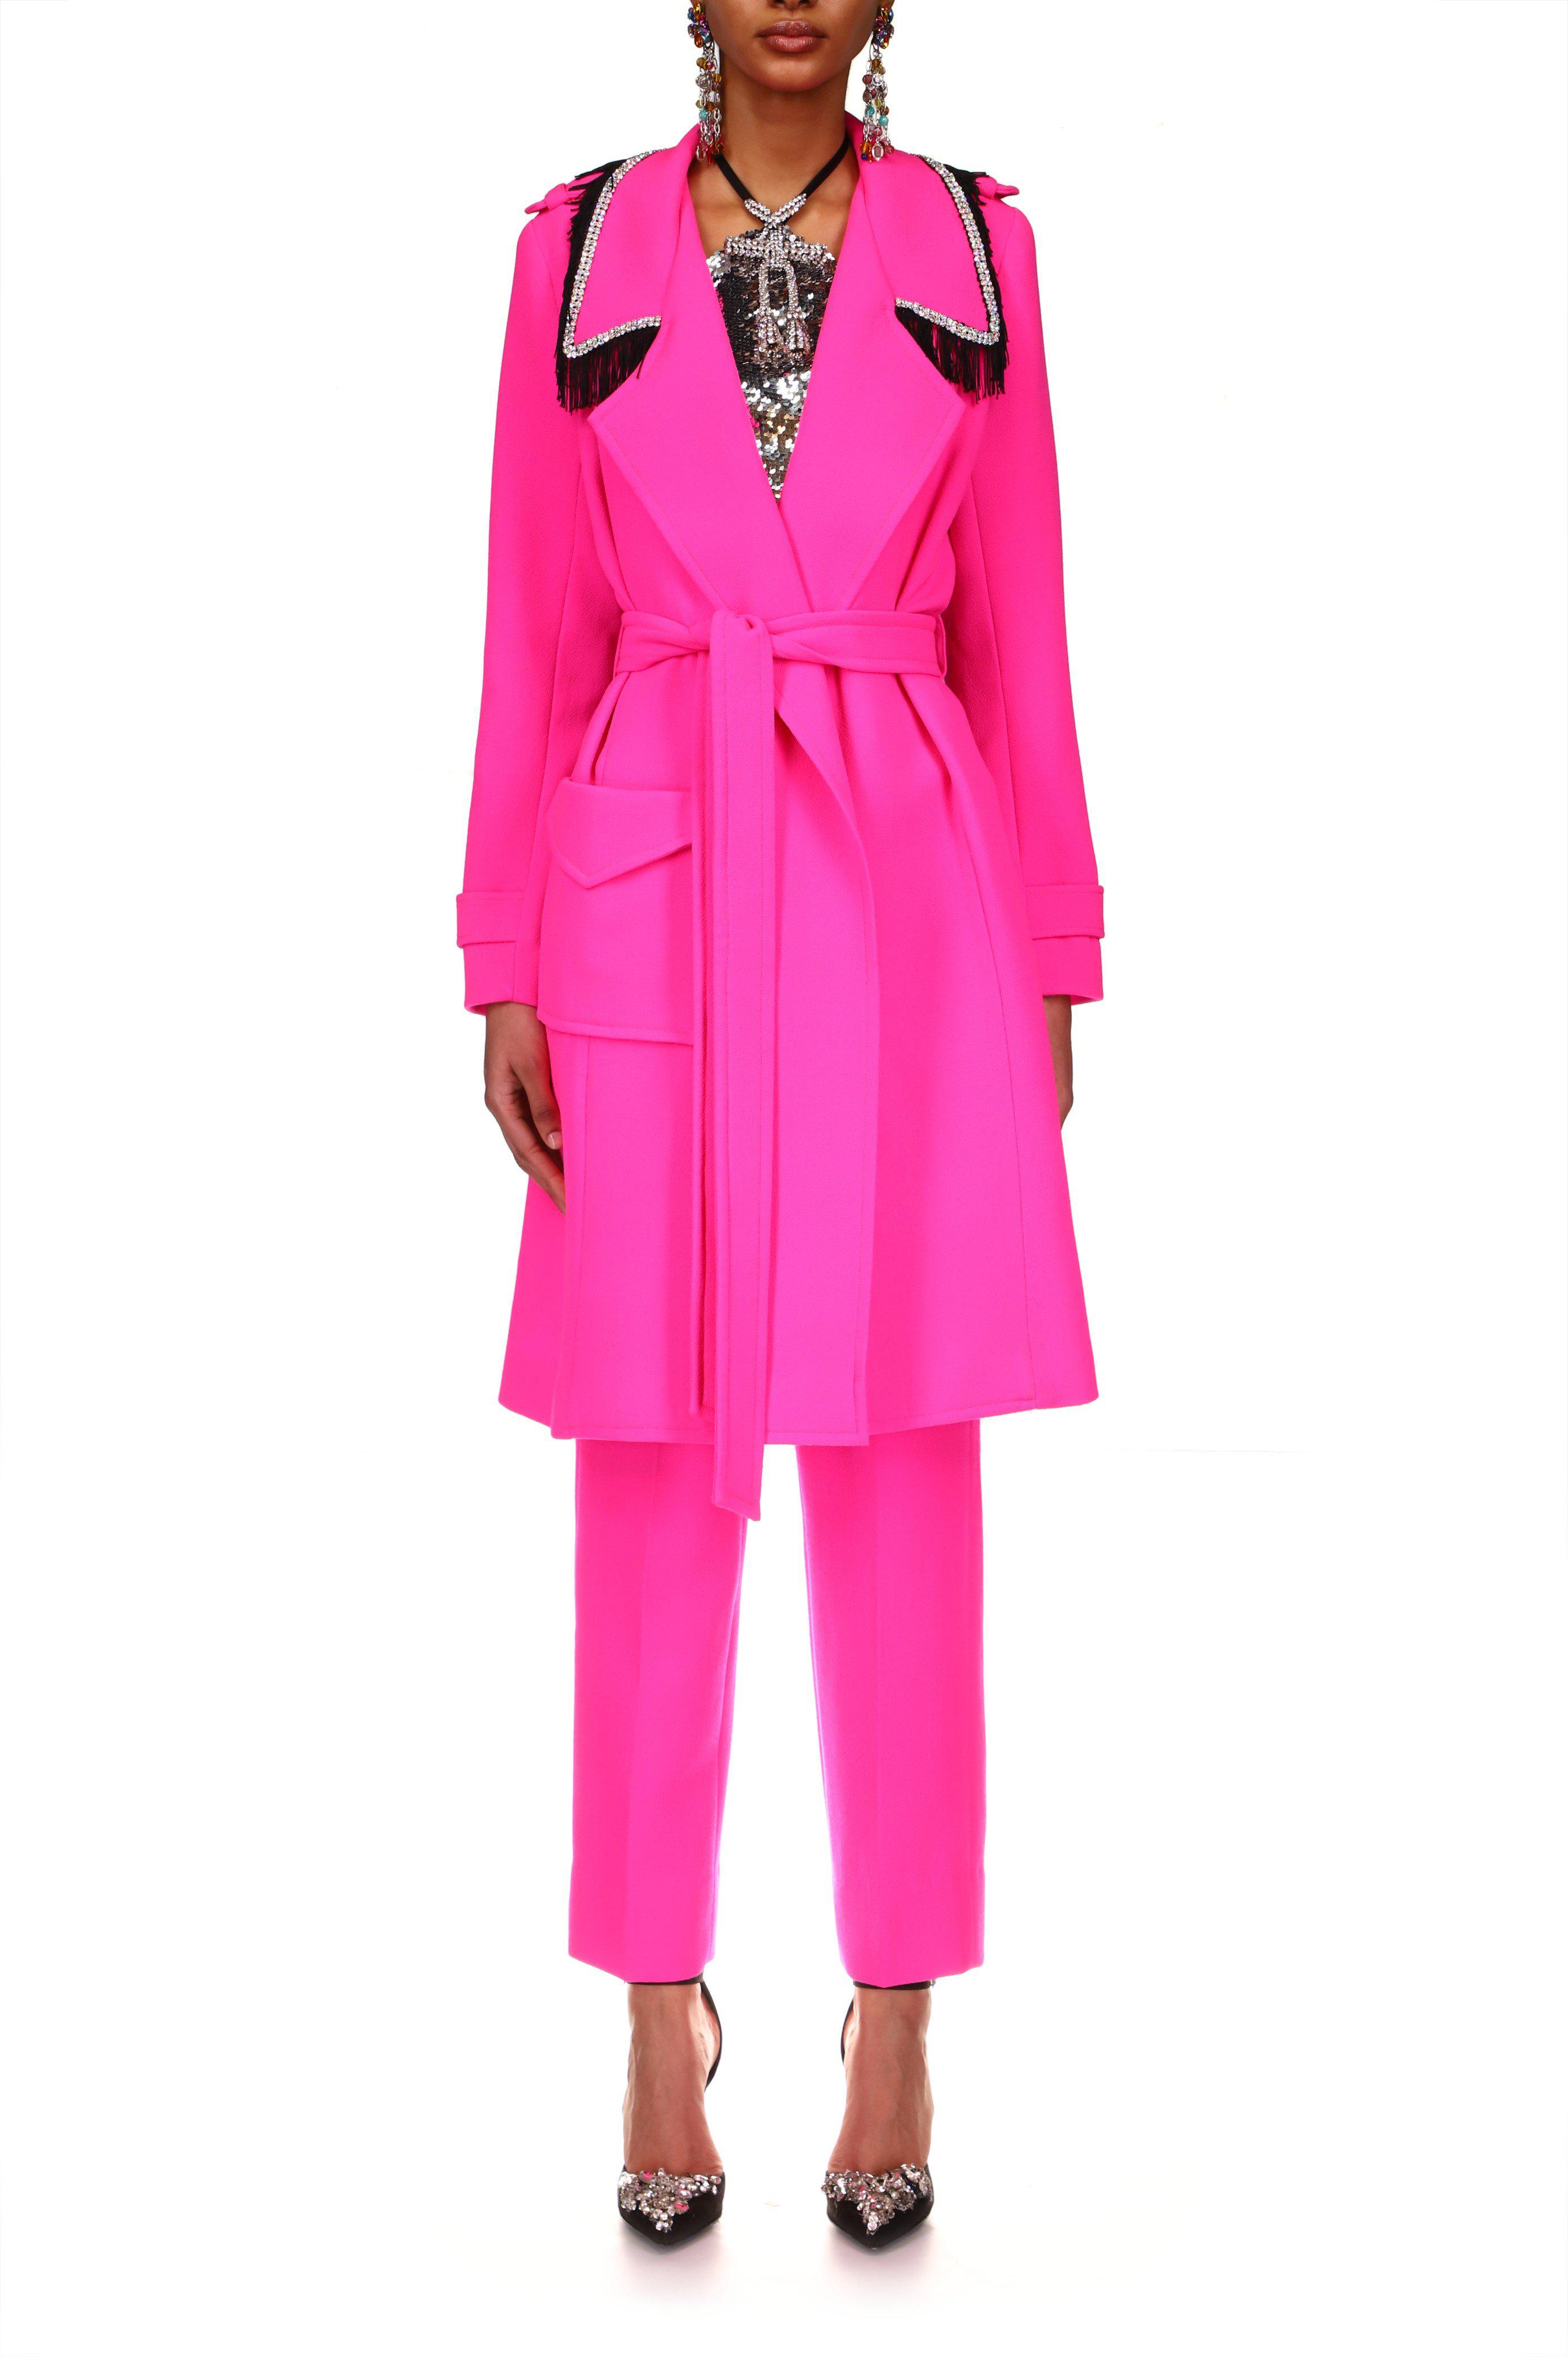 NEON PINK WOOL TRENCH COAT WITH RHINESTONE AND FRINGE DETAIL